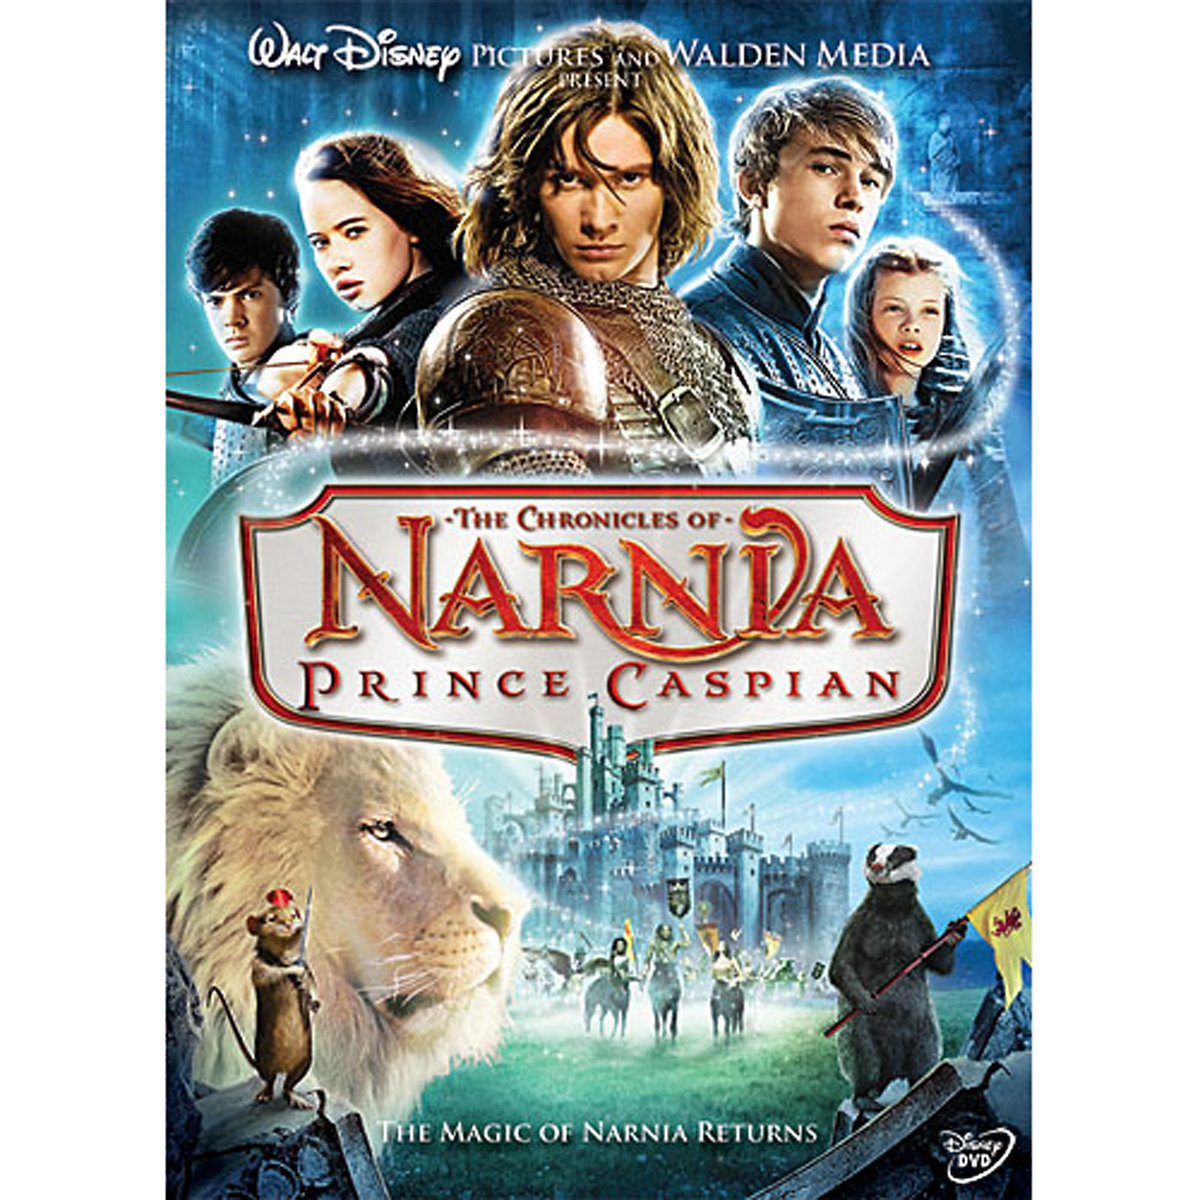 The Chronicles of Narnia- Prince Caspian.jpeg